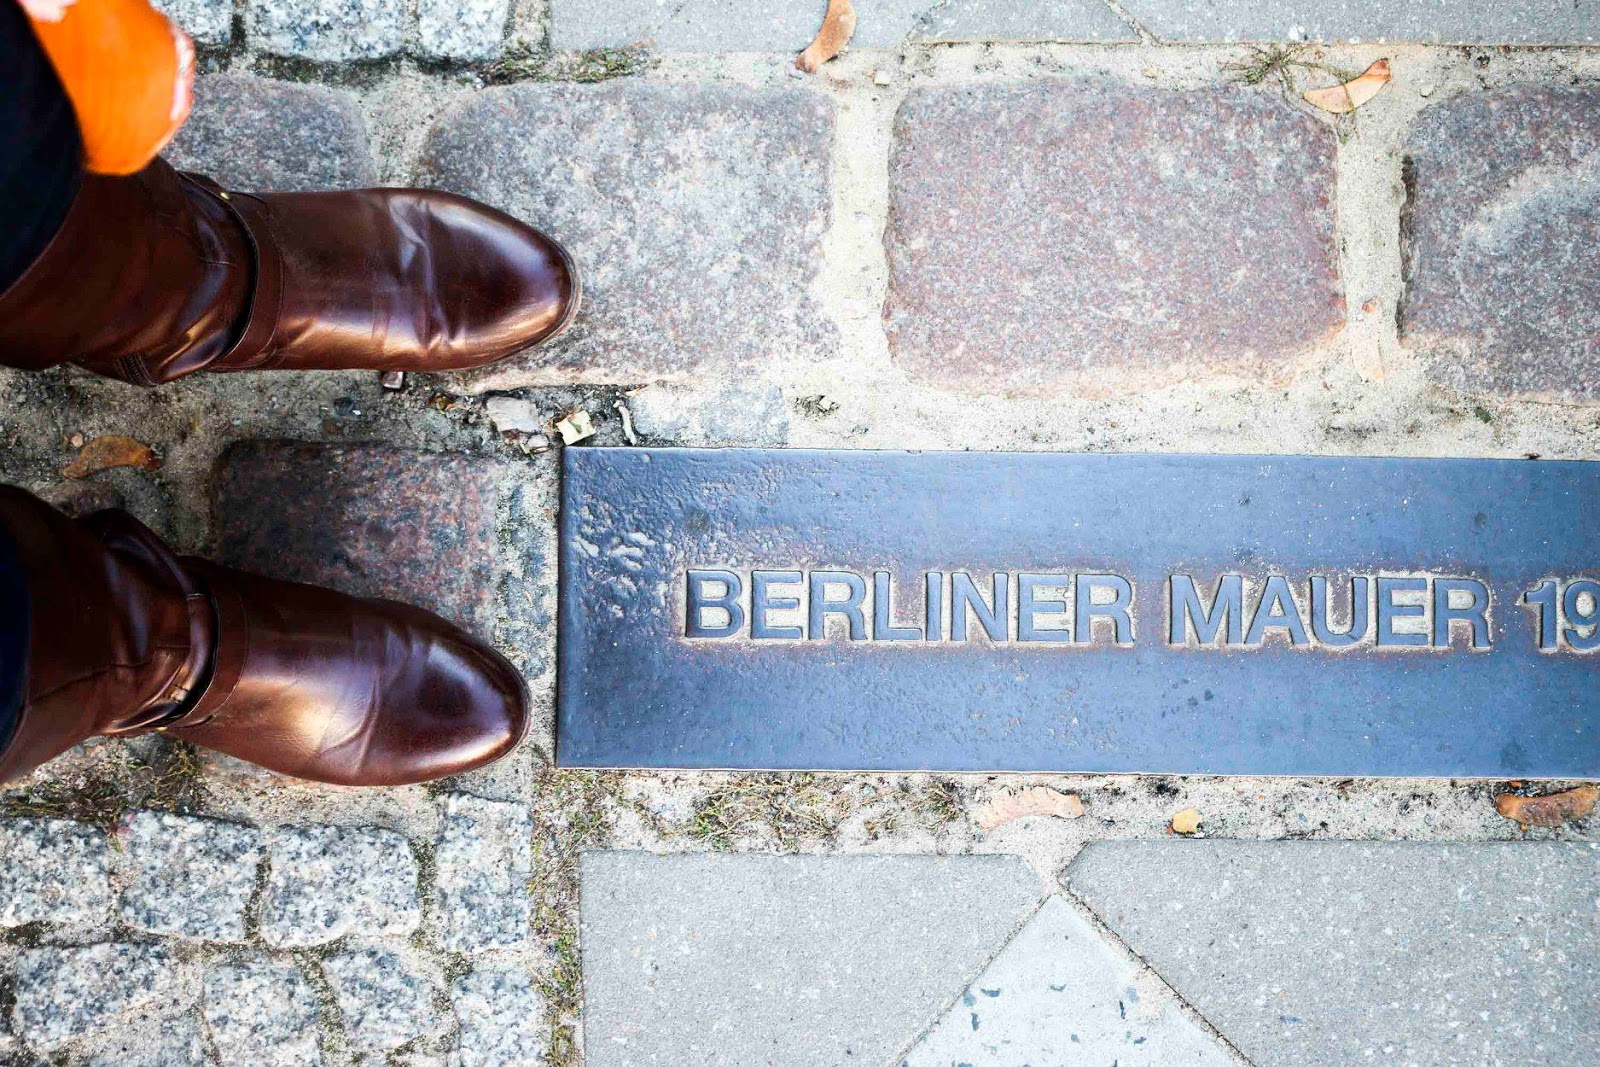 Standing over the Berlin wall marker